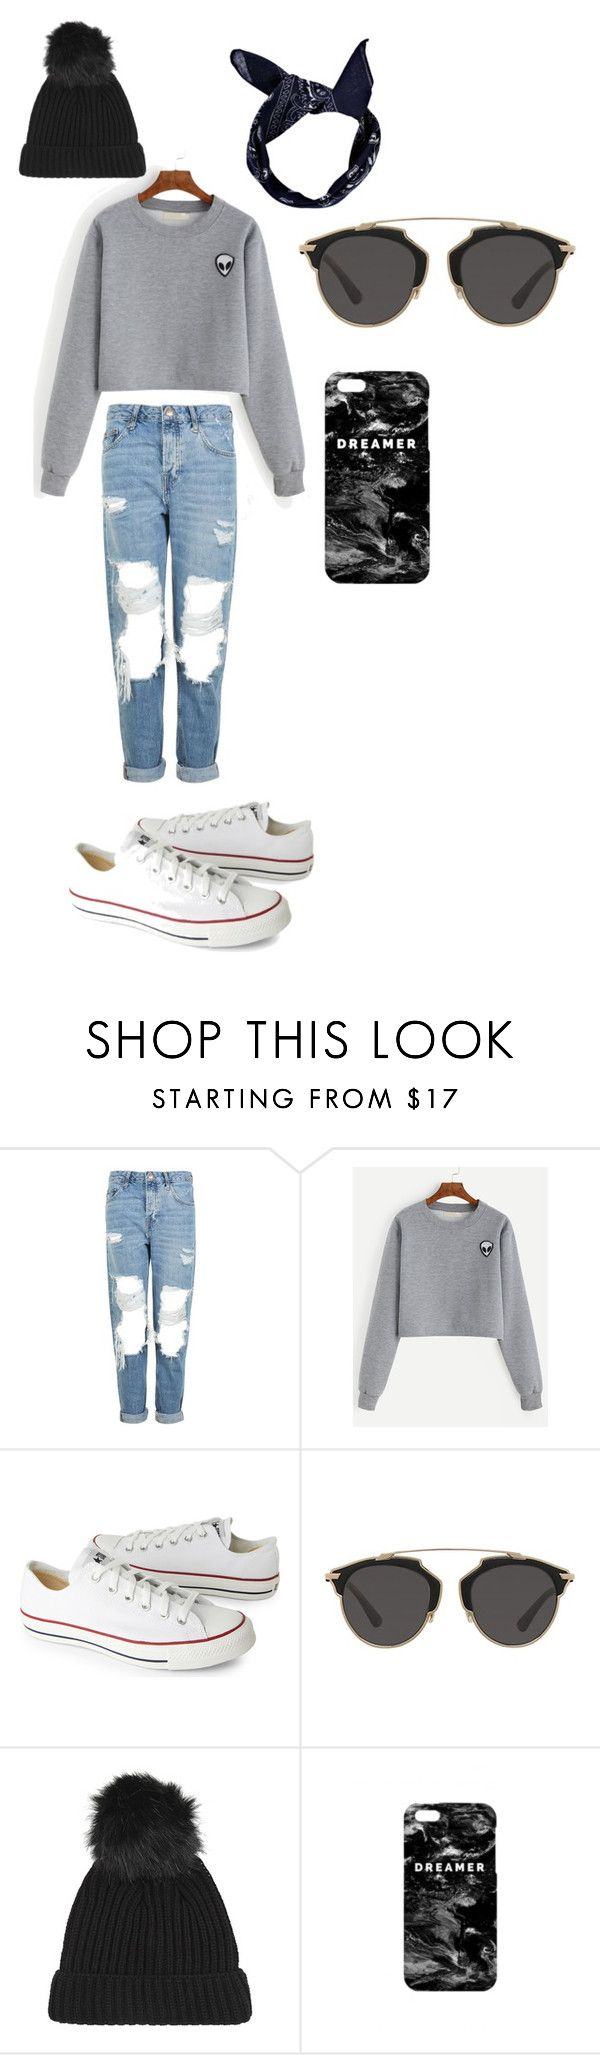 """""""kleding style"""" by britje-1 on Polyvore featuring mode, Topshop, Converse, Christian Dior, Mr. Gugu & Miss Go en Boohoo"""